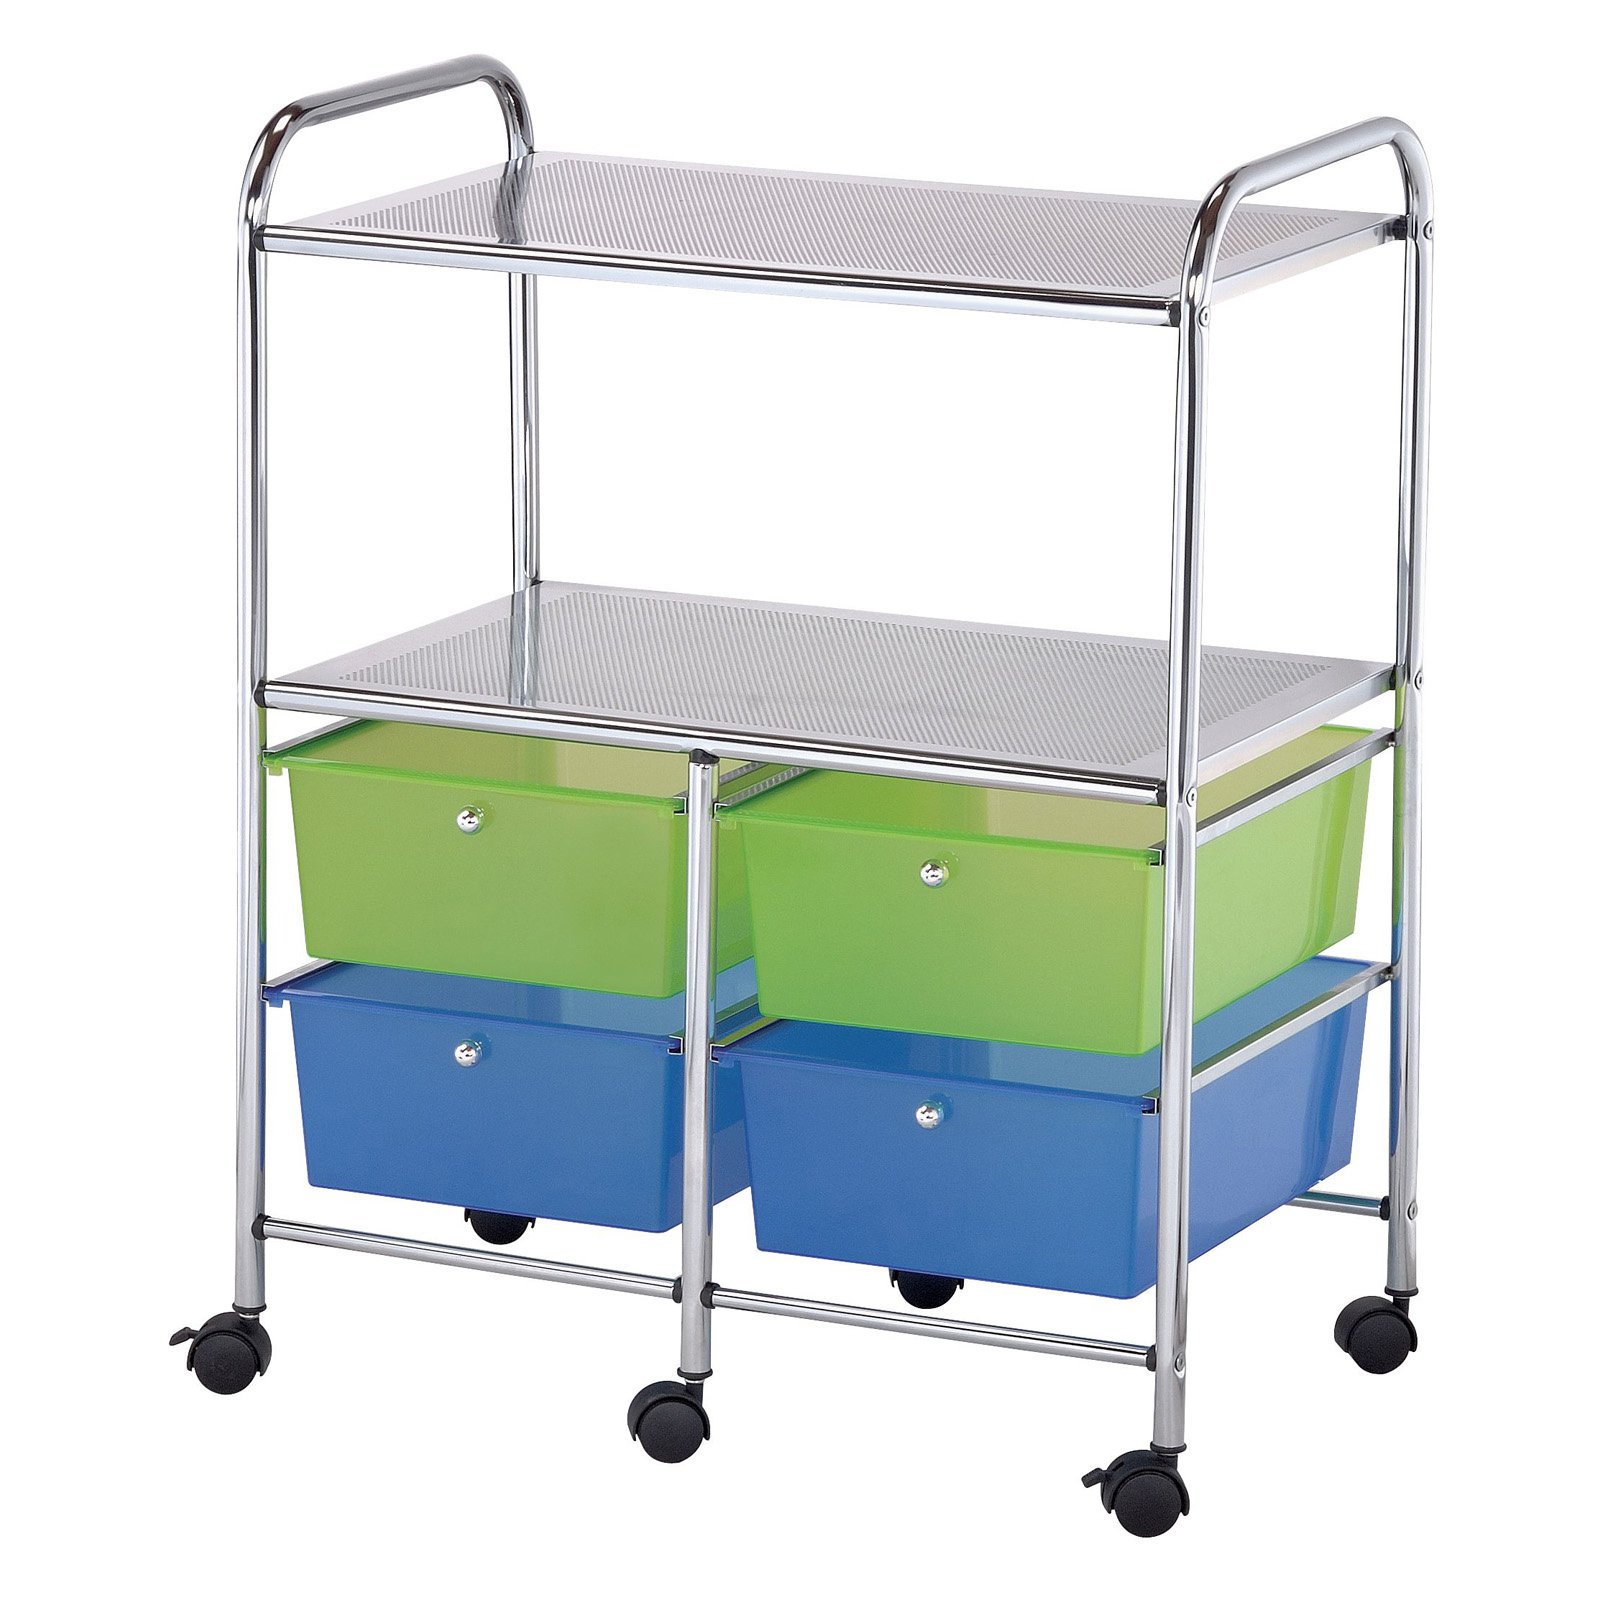 fingerhut ncgum drawer to rolling zoom for hover va storage click image uts concepts product over cart drawers full scl